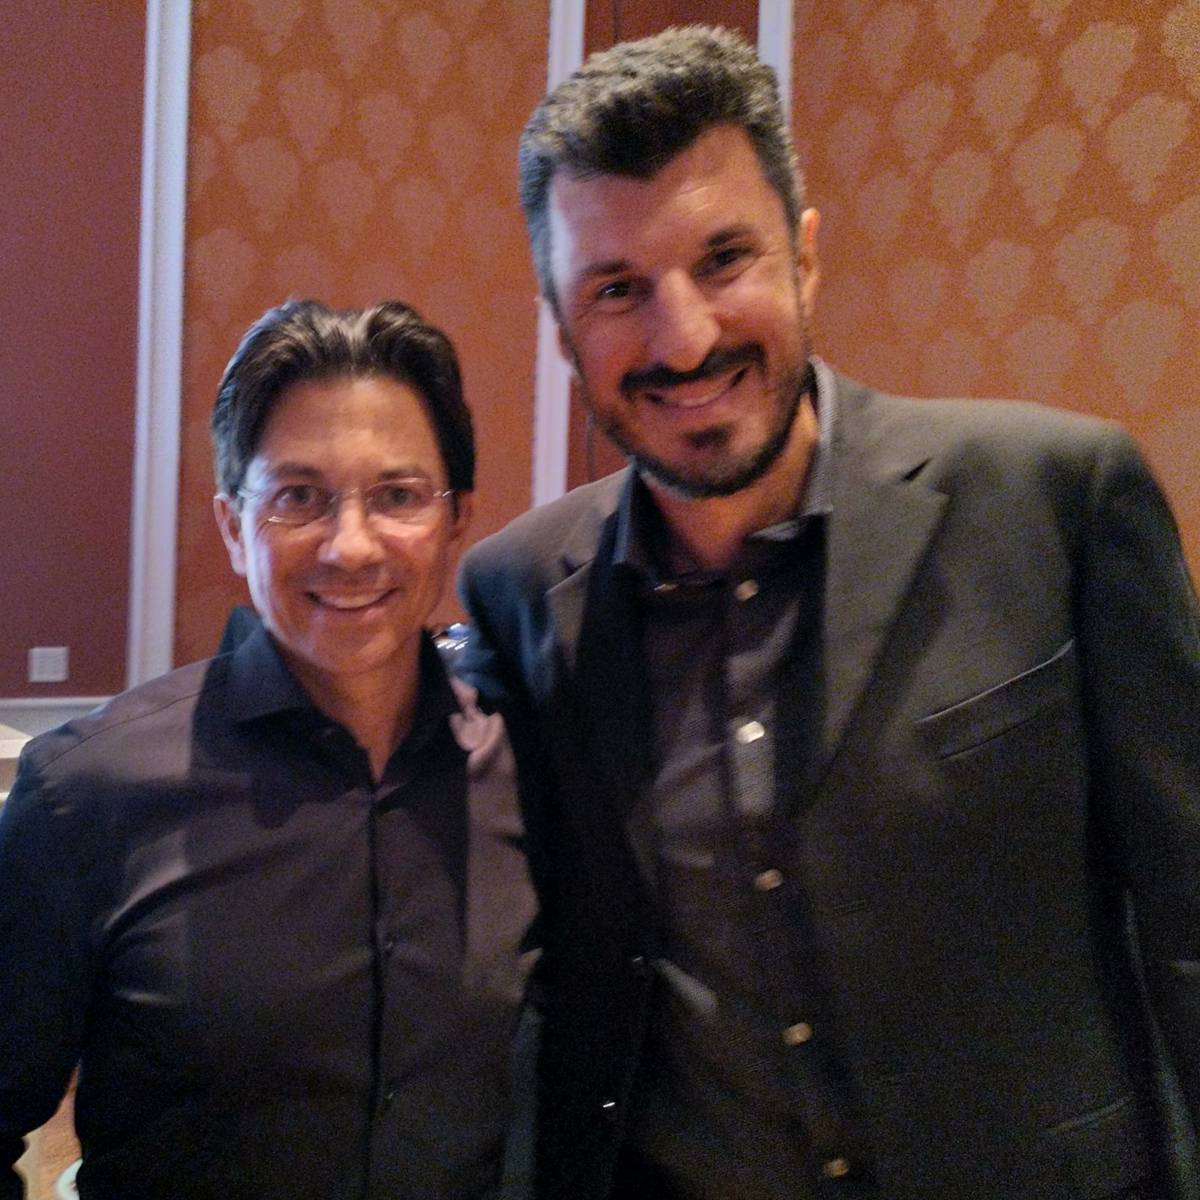 Dean Graziosi and Angelo Labrou at KBB Party in Las Vegas